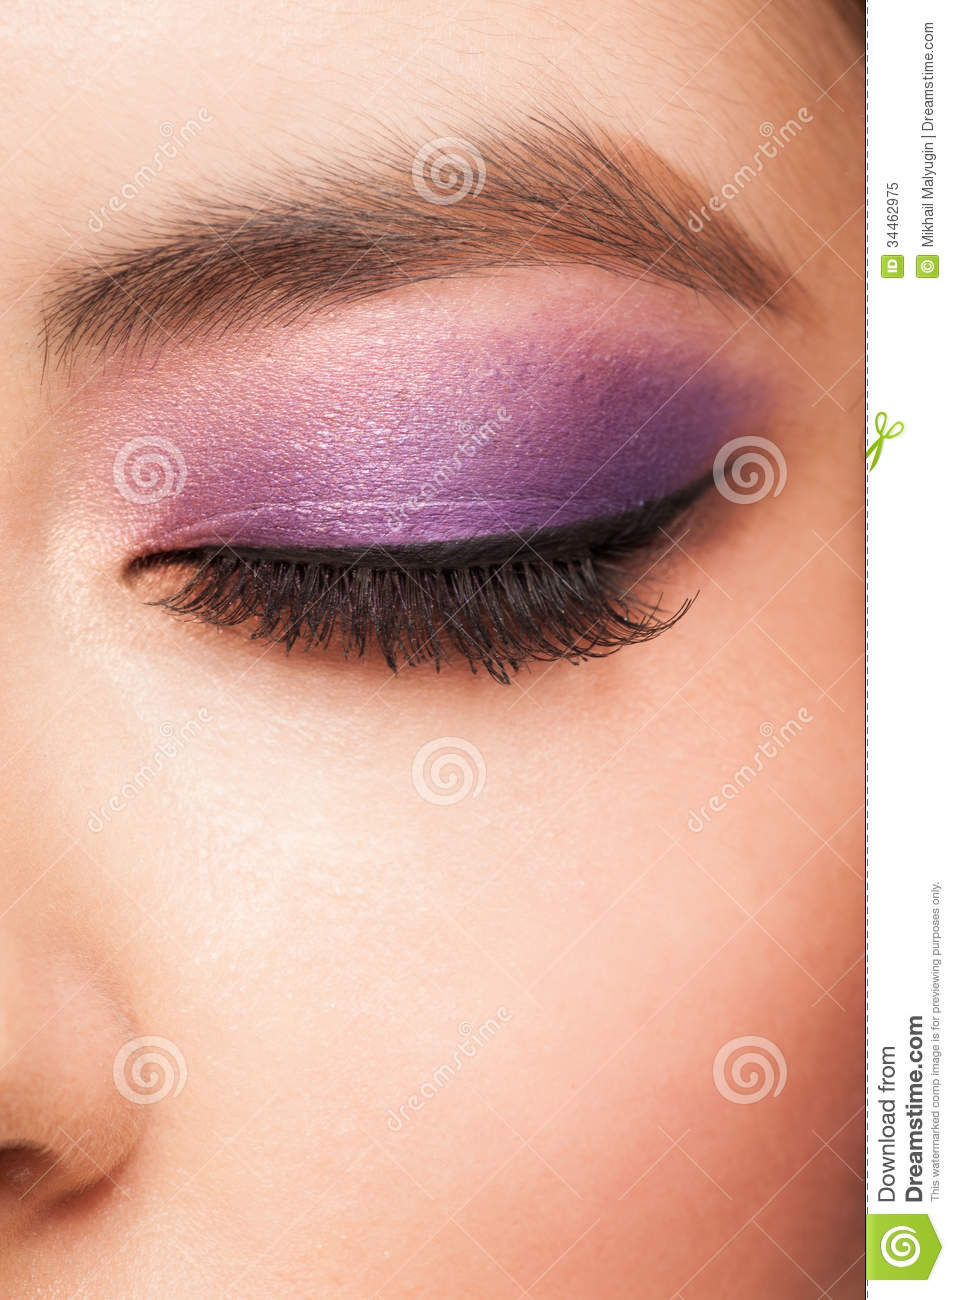 eye with makeup royalty free stock photo image 34462975